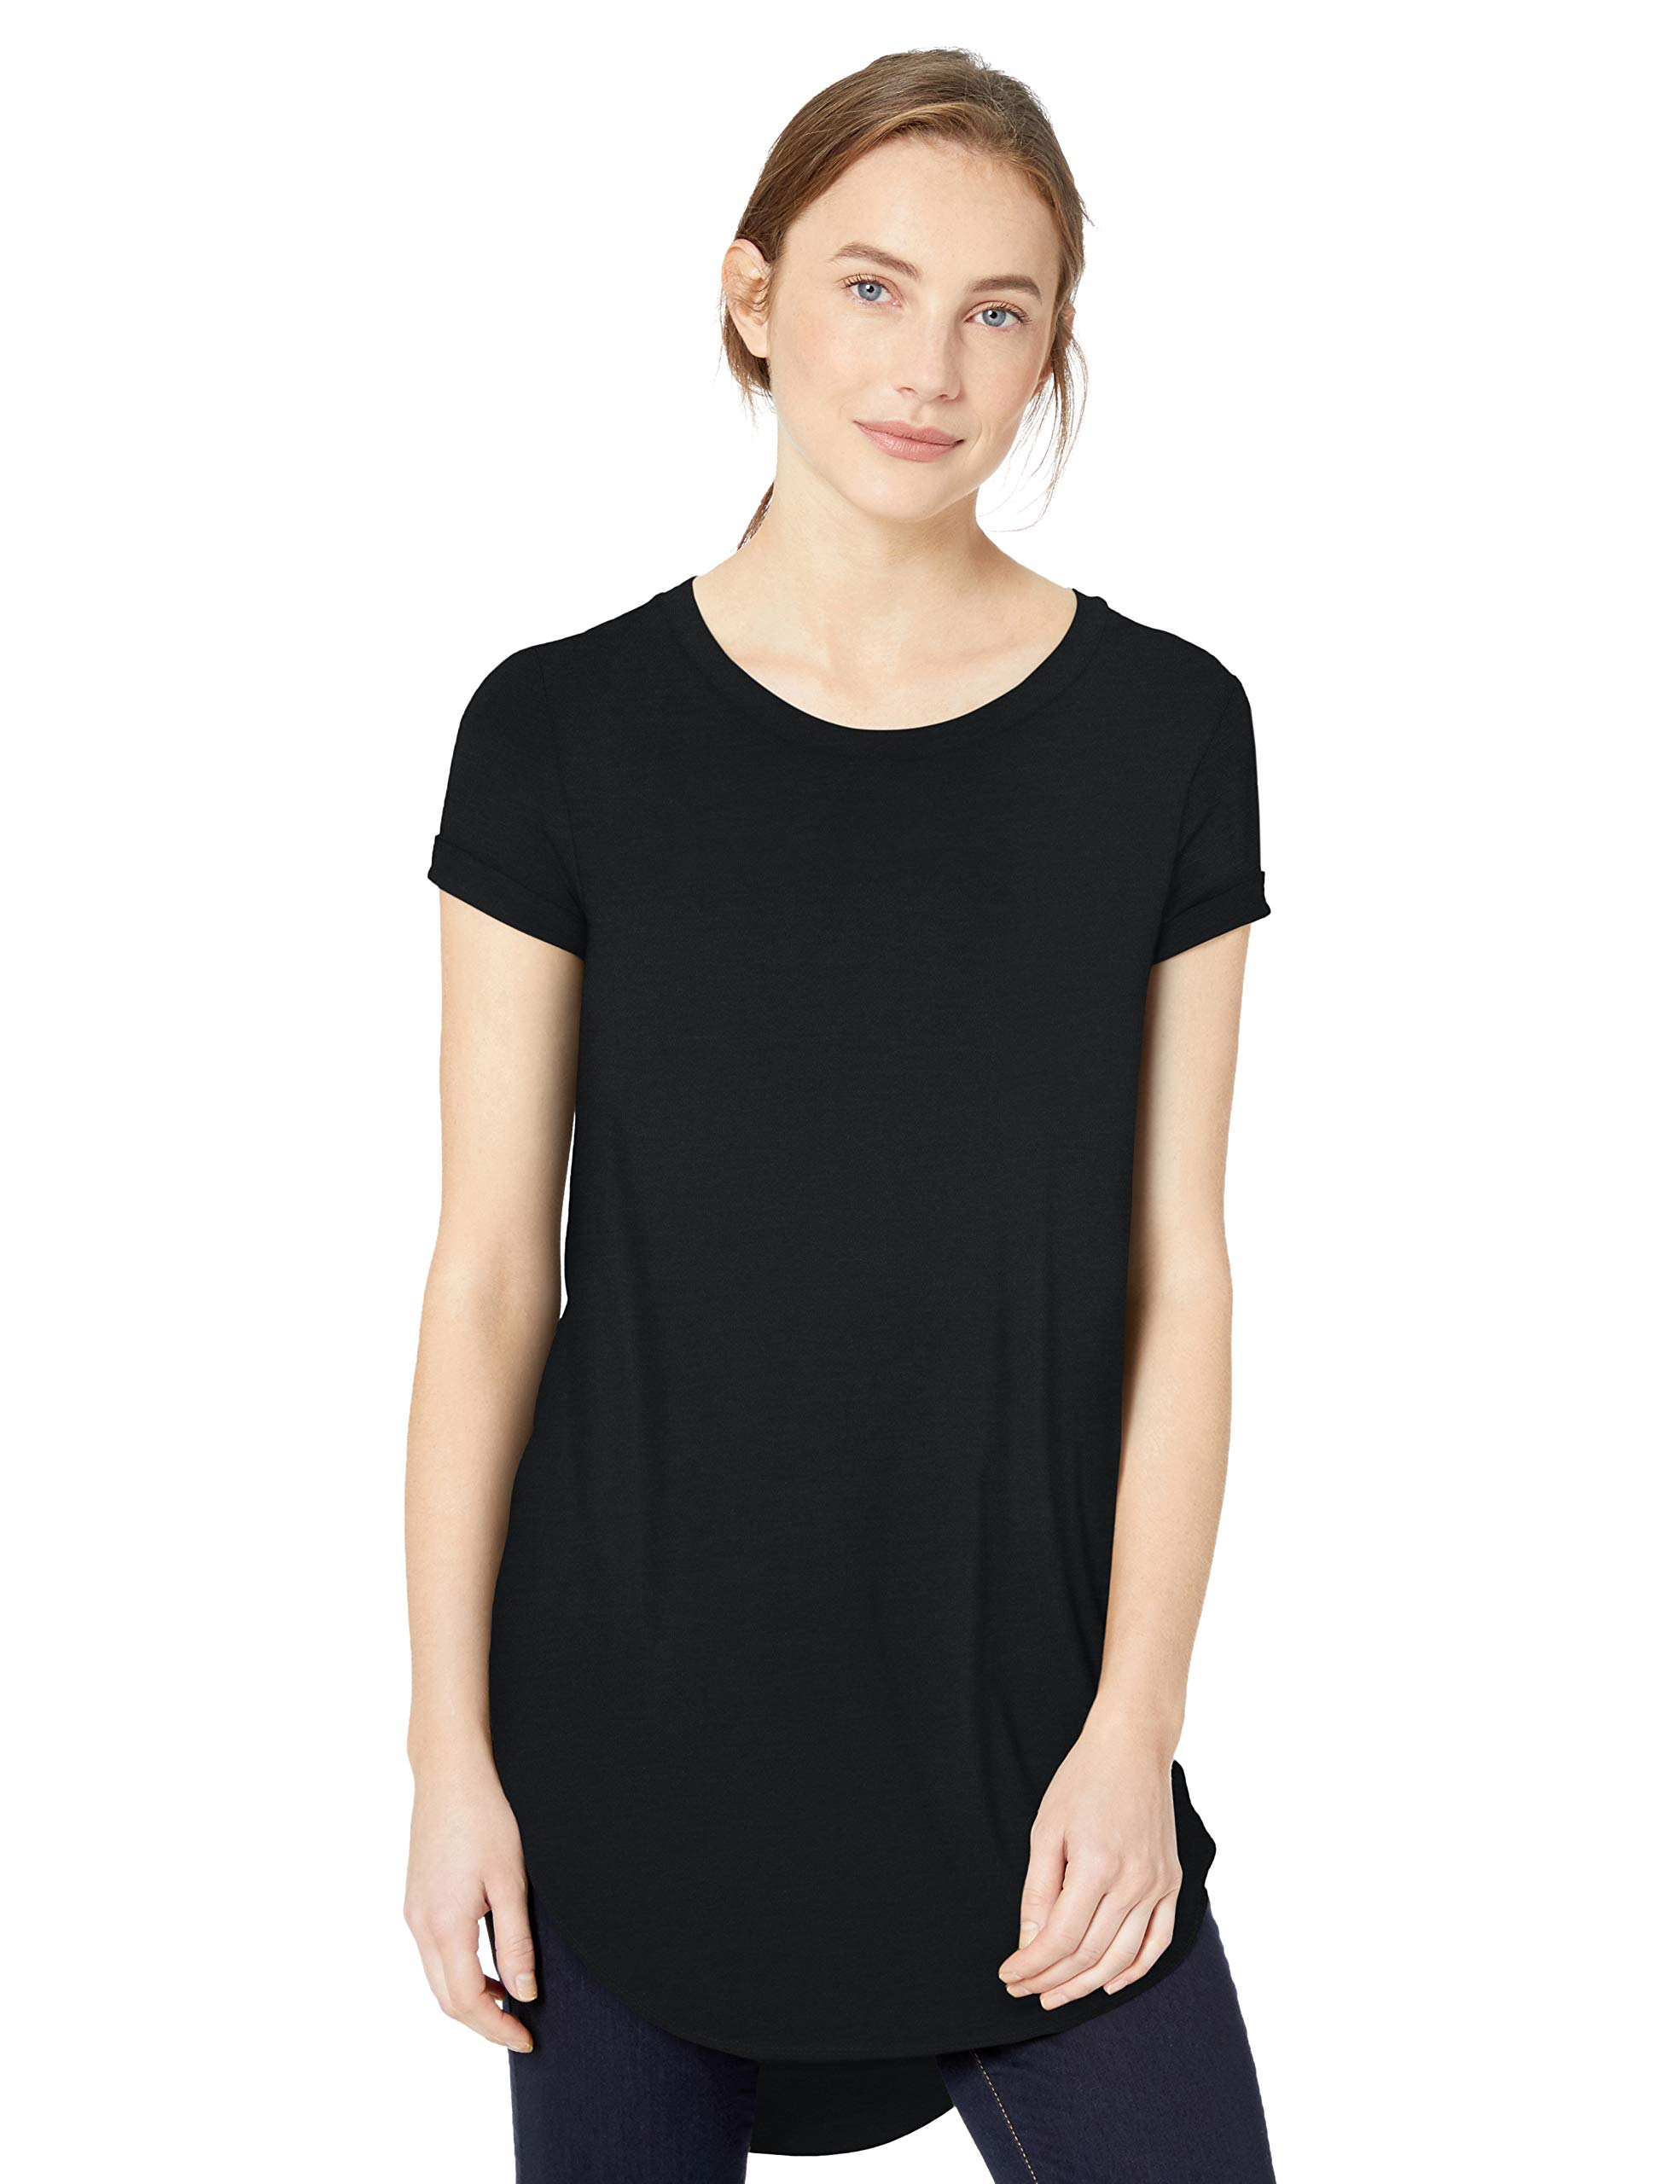 Amazon Brand - Daily Ritual Women's Jersey Short-Sleeve Open Crew Neck Tunic, Black, Large by Daily Ritual